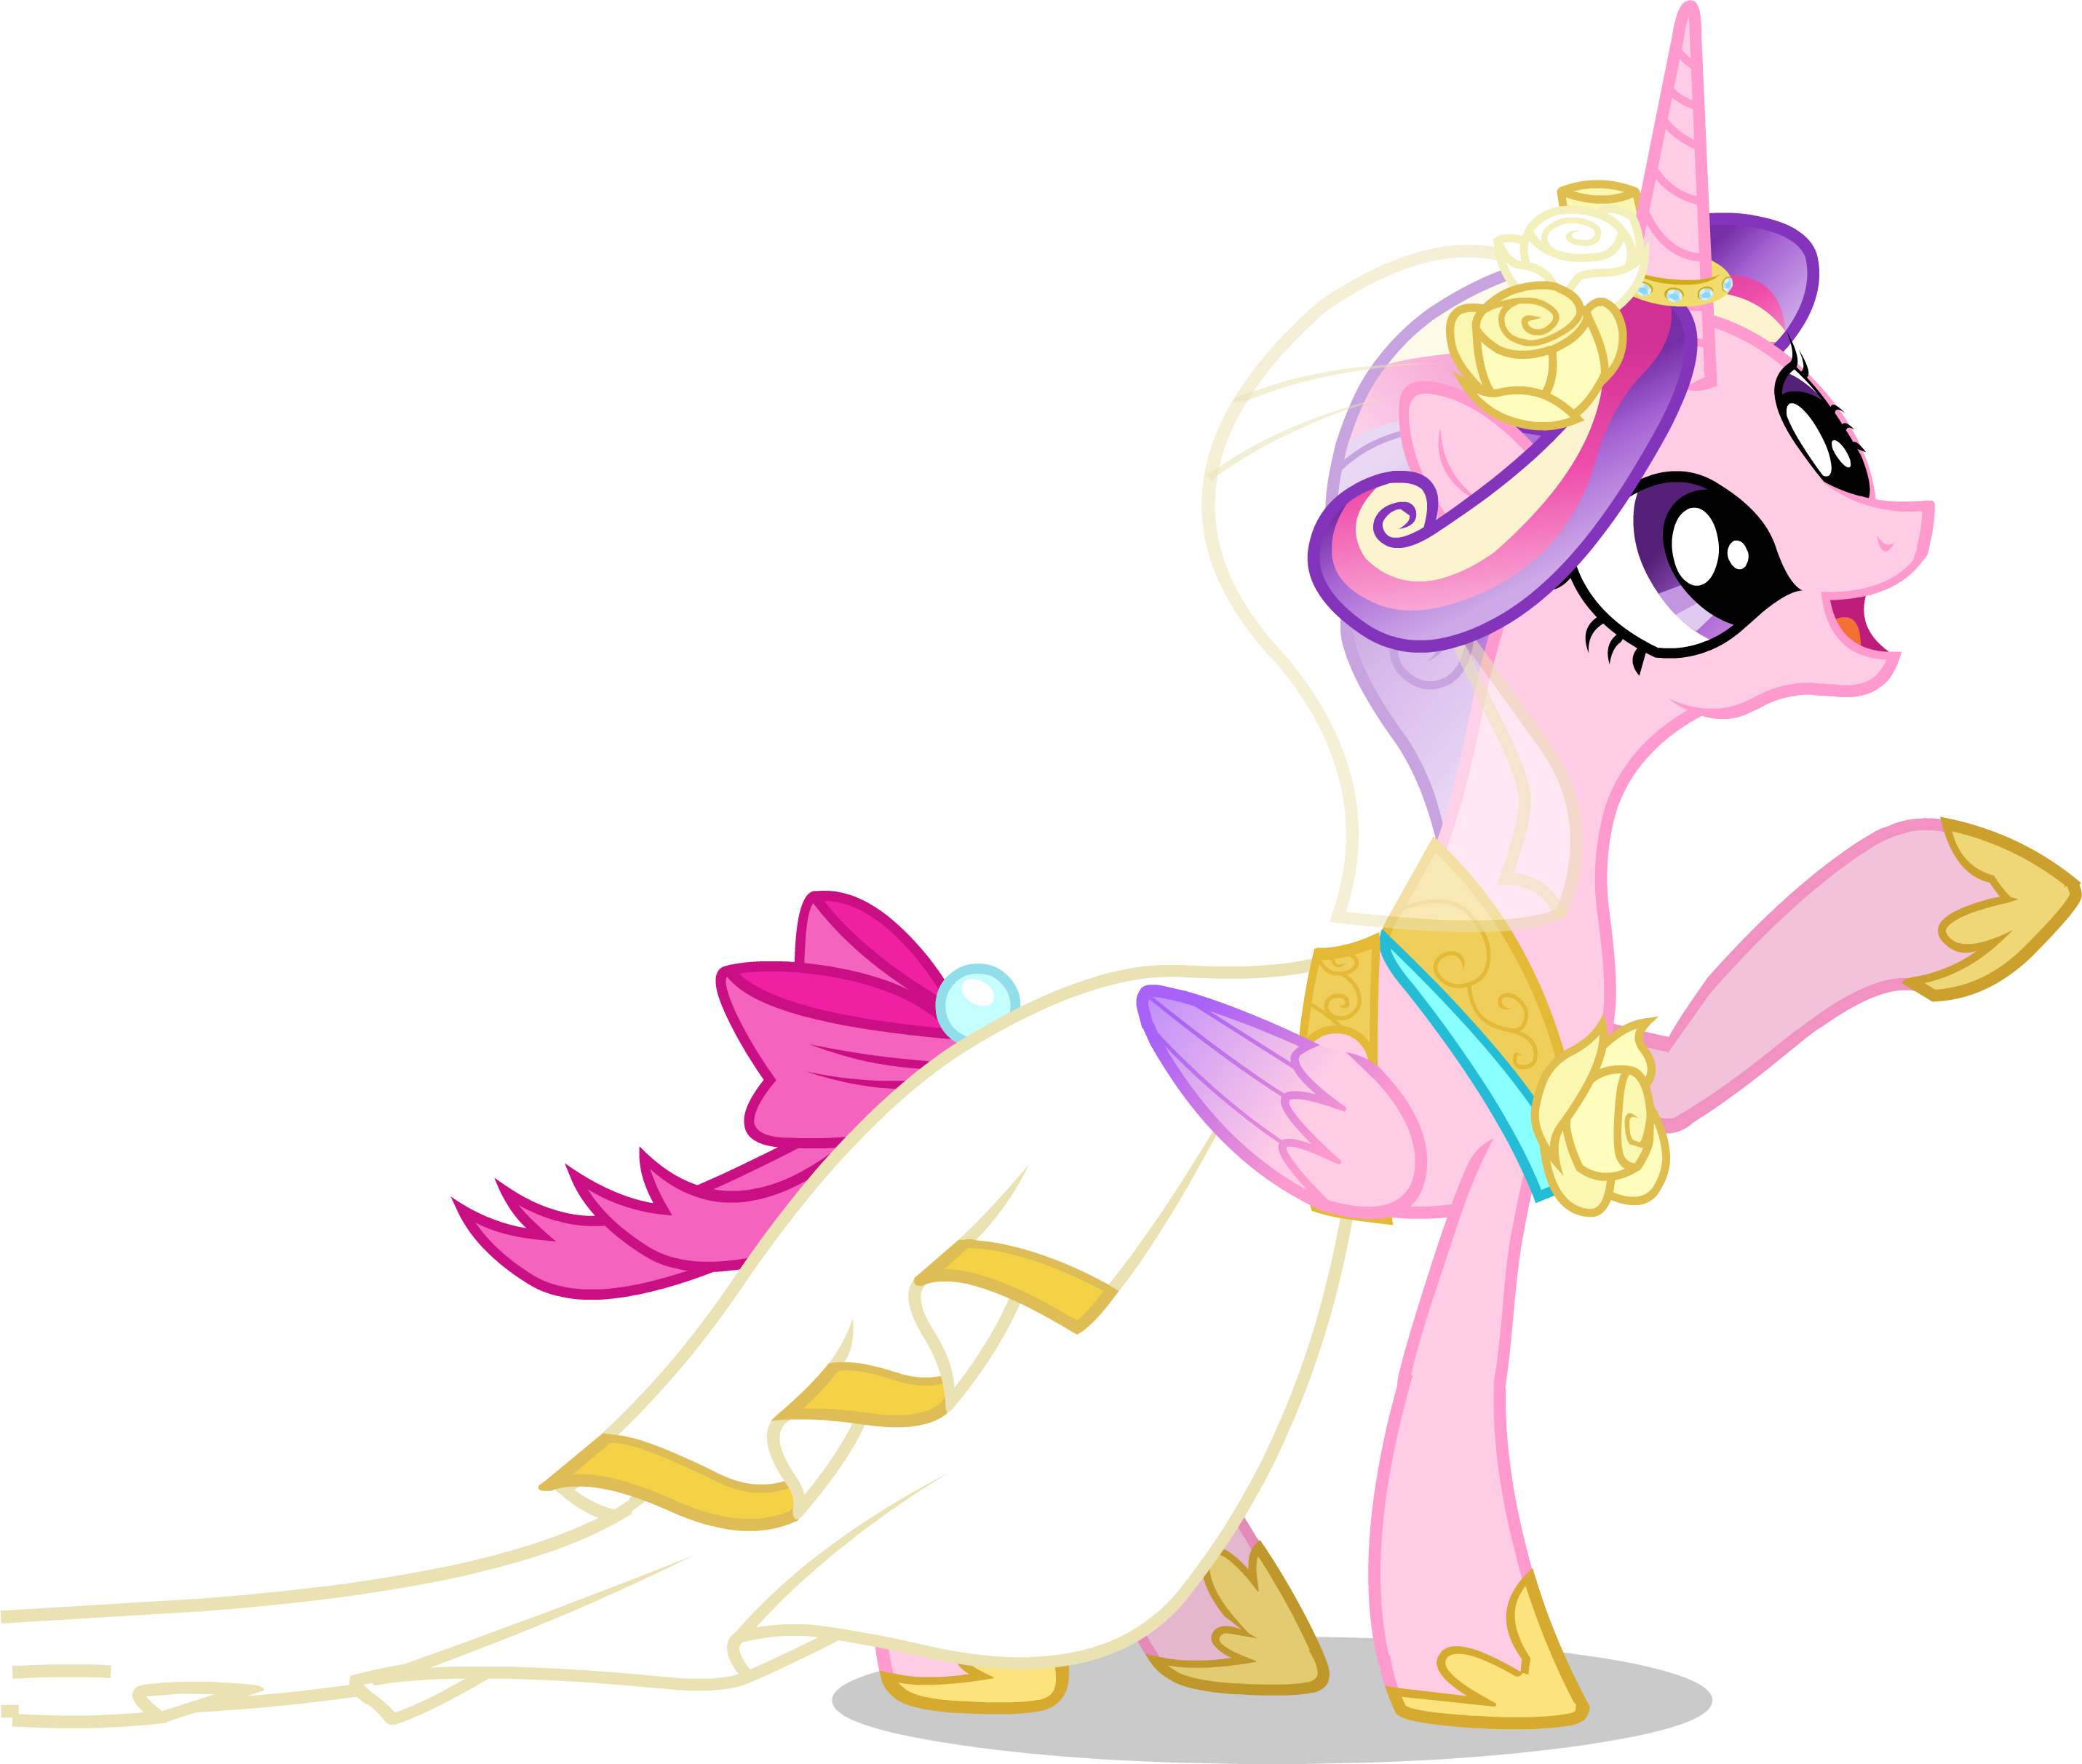 Mlp Cadence Wedding Dress Images & Pictures - Becuo